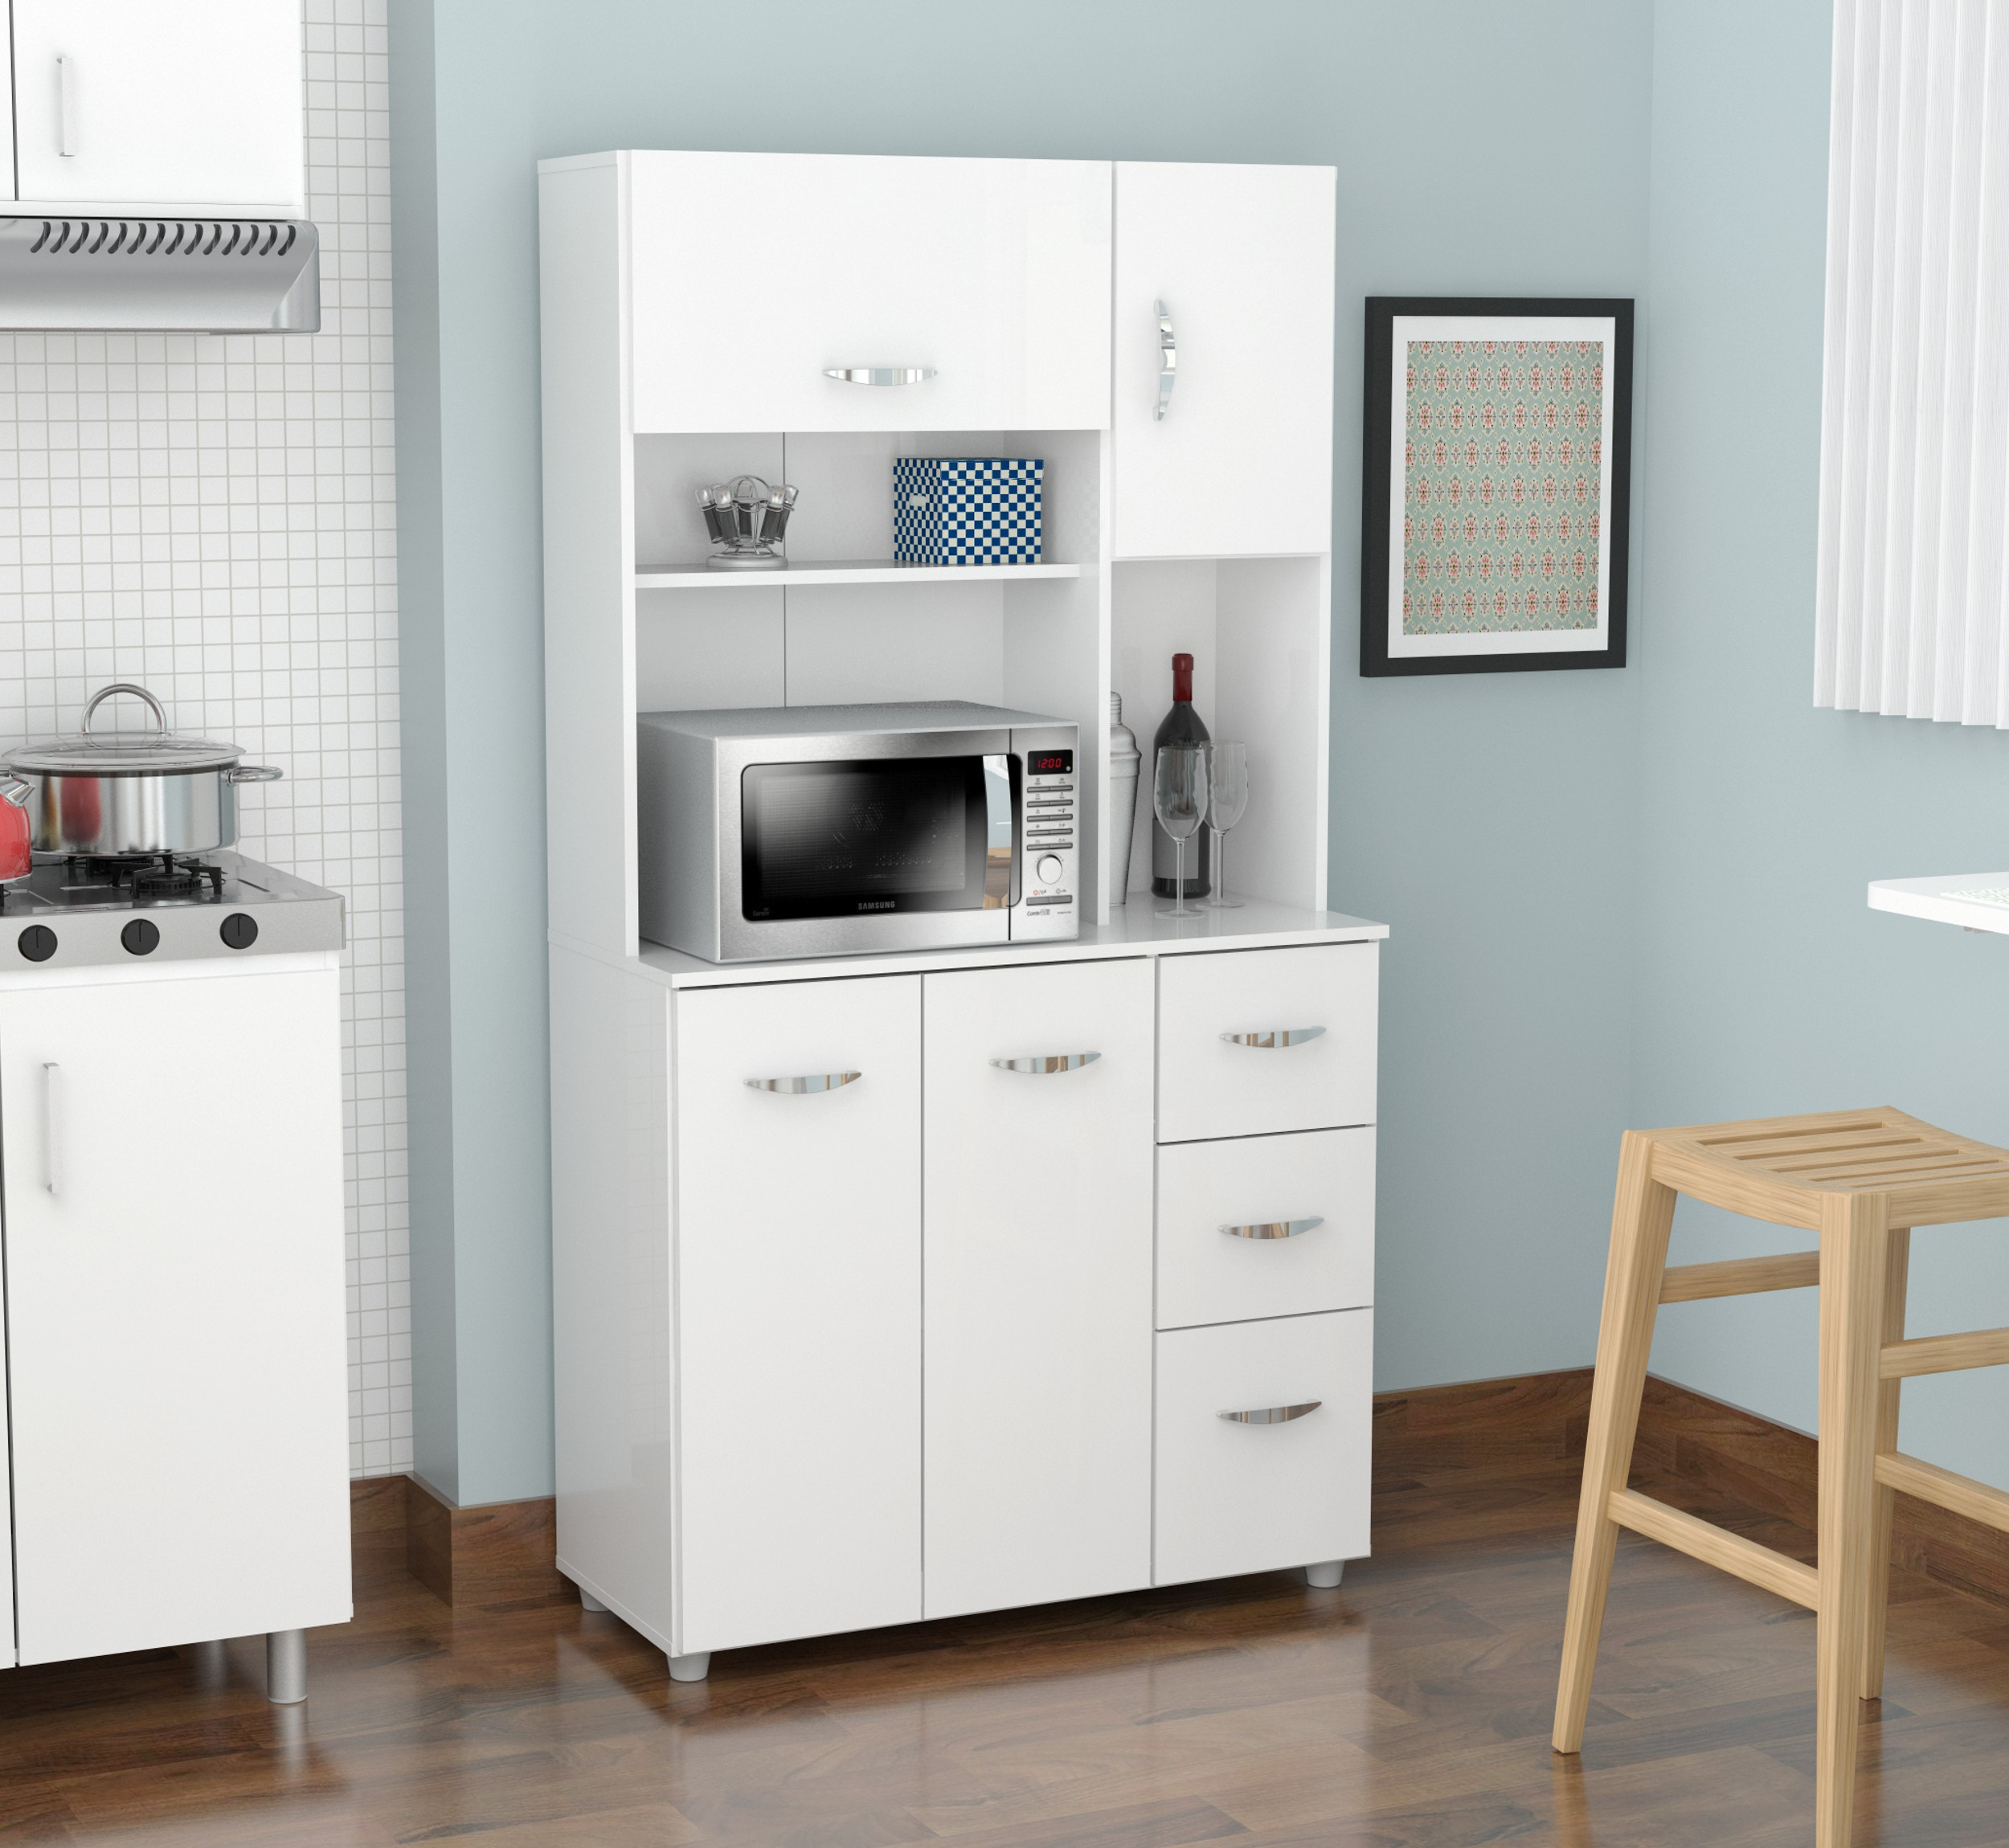 Etonnant Inval Modern Laricina White Kitchen Storage Cabinet